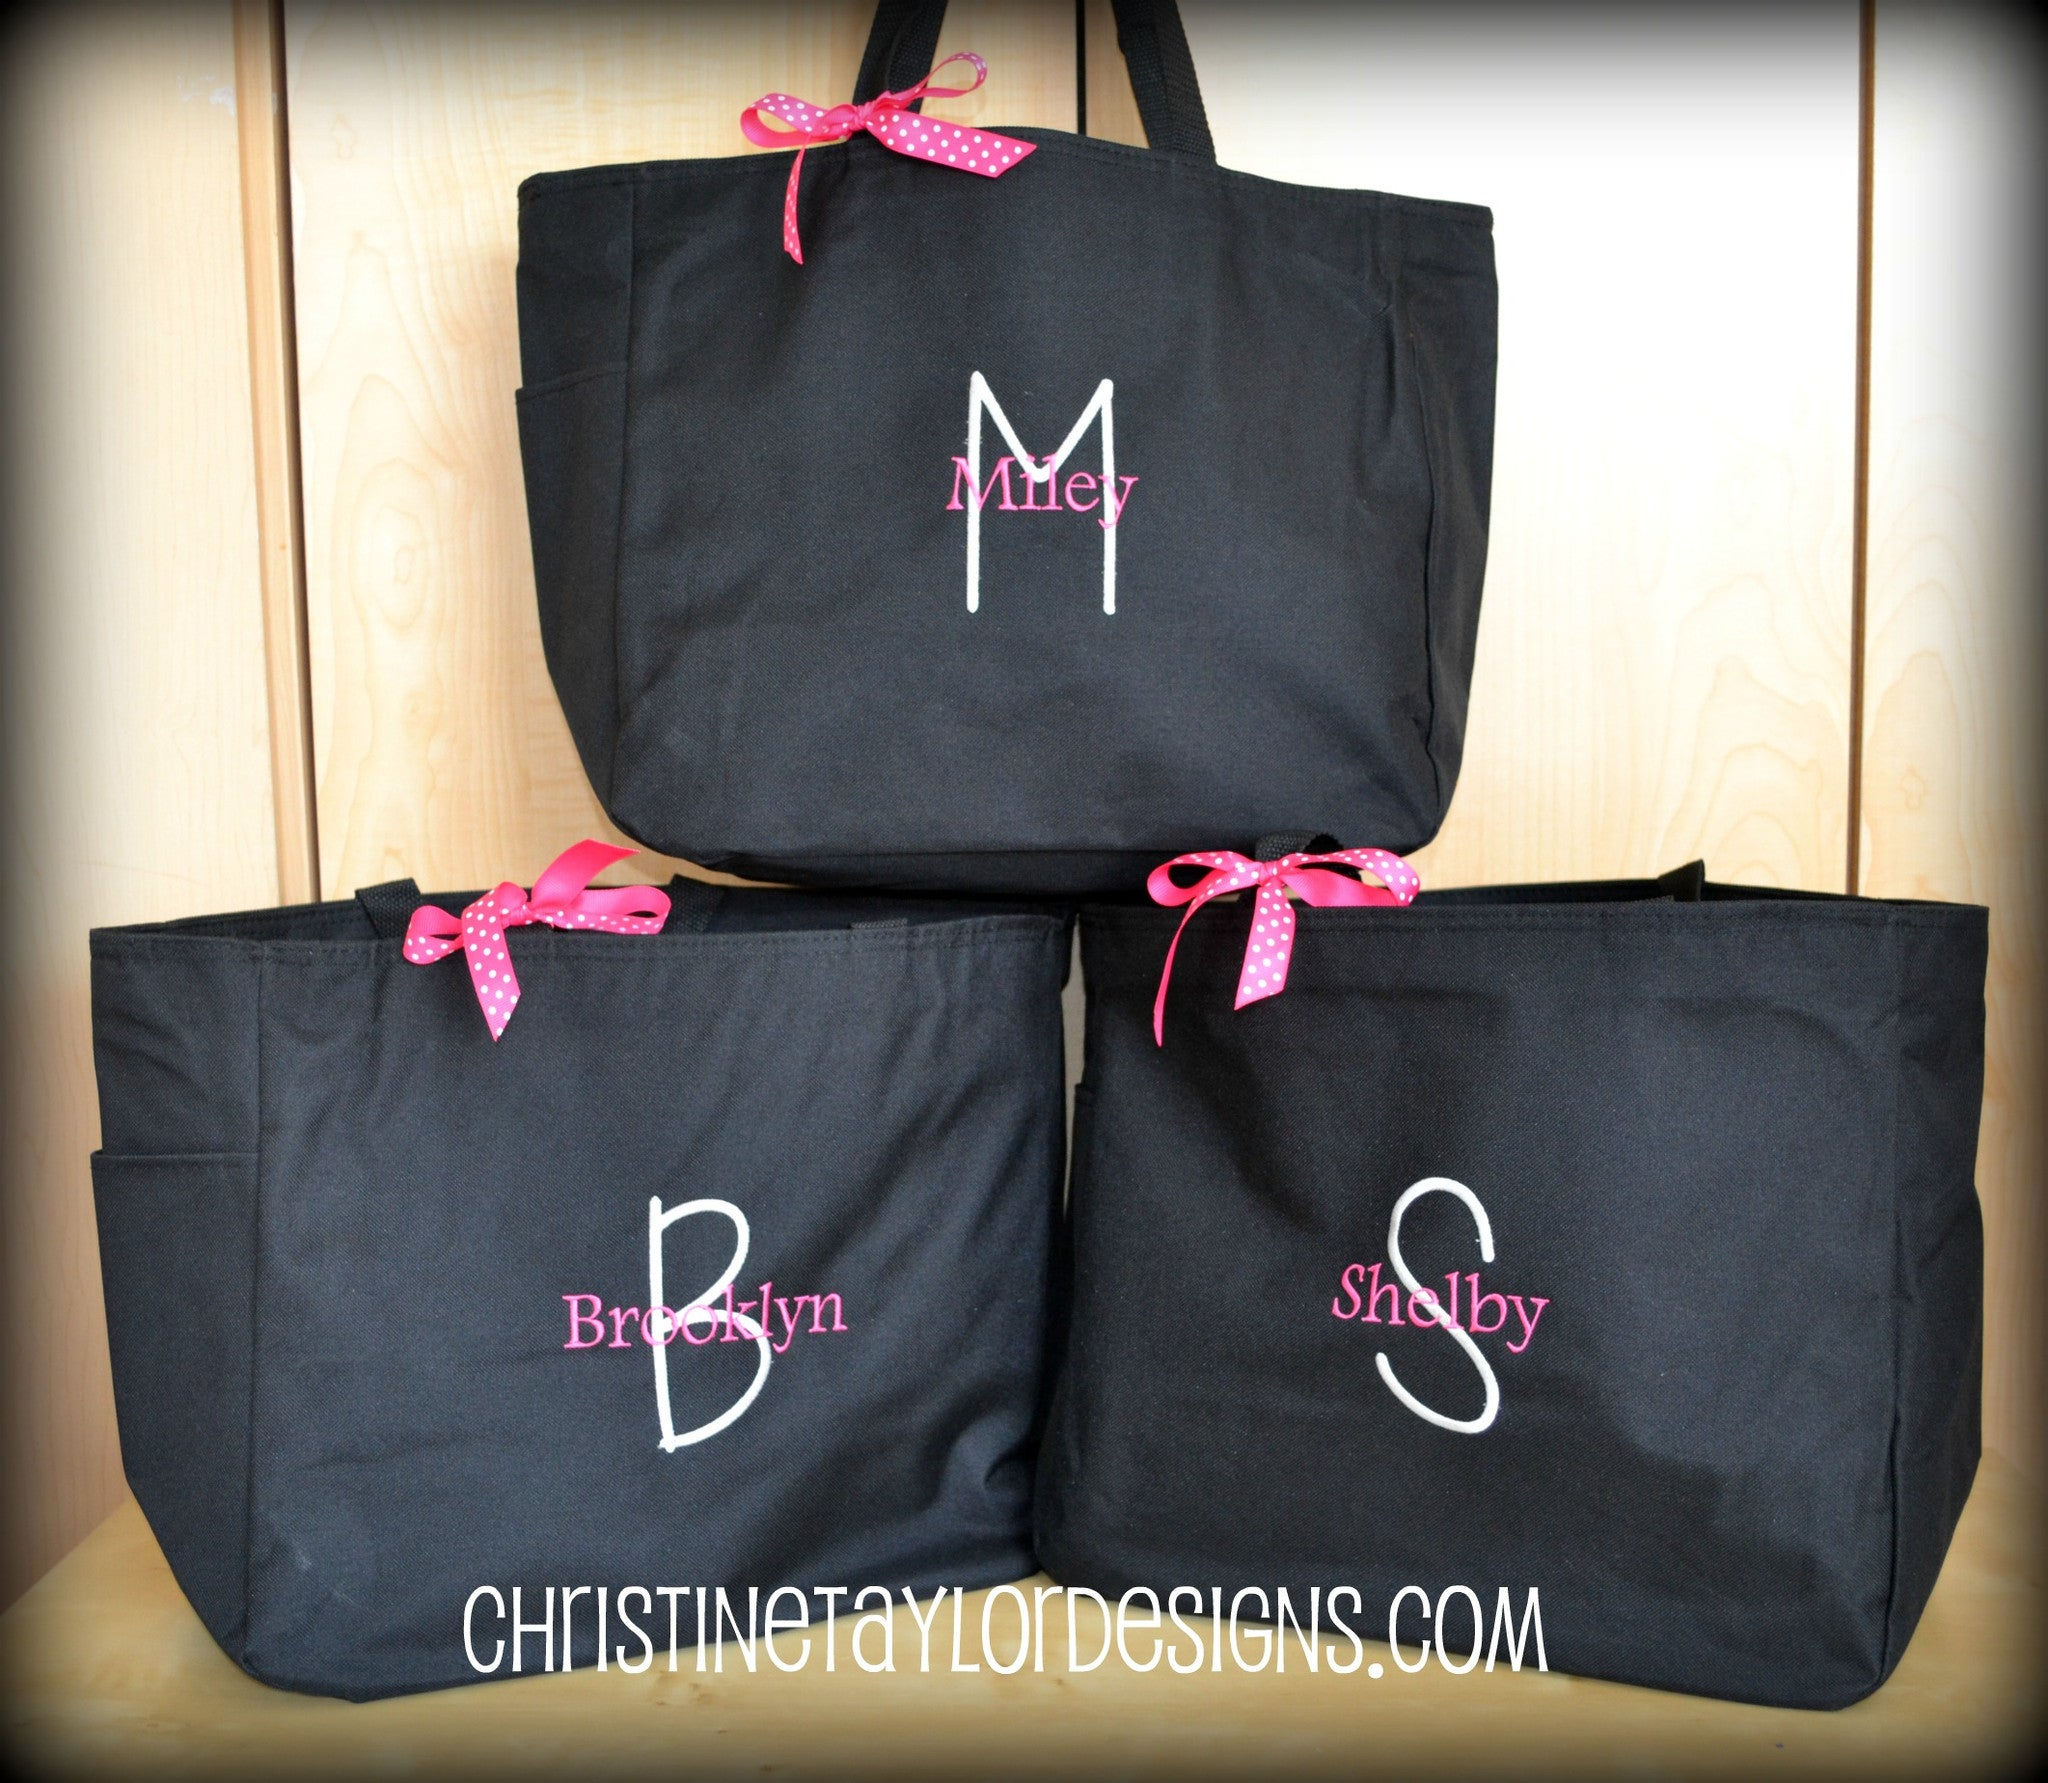 Personalized Tote Bags - Christine Taylor Designs